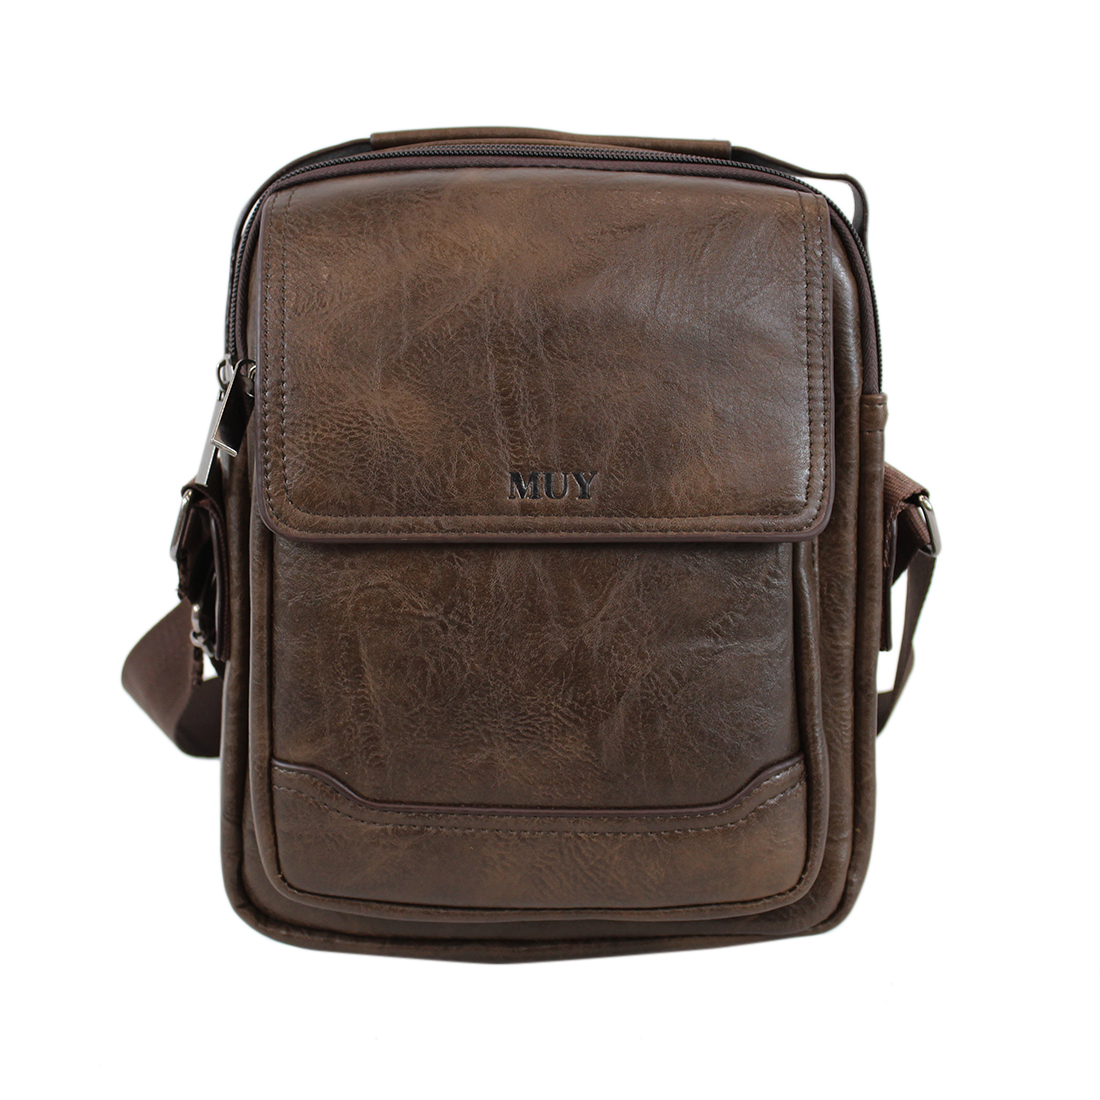 Plain cross body with pocket on front